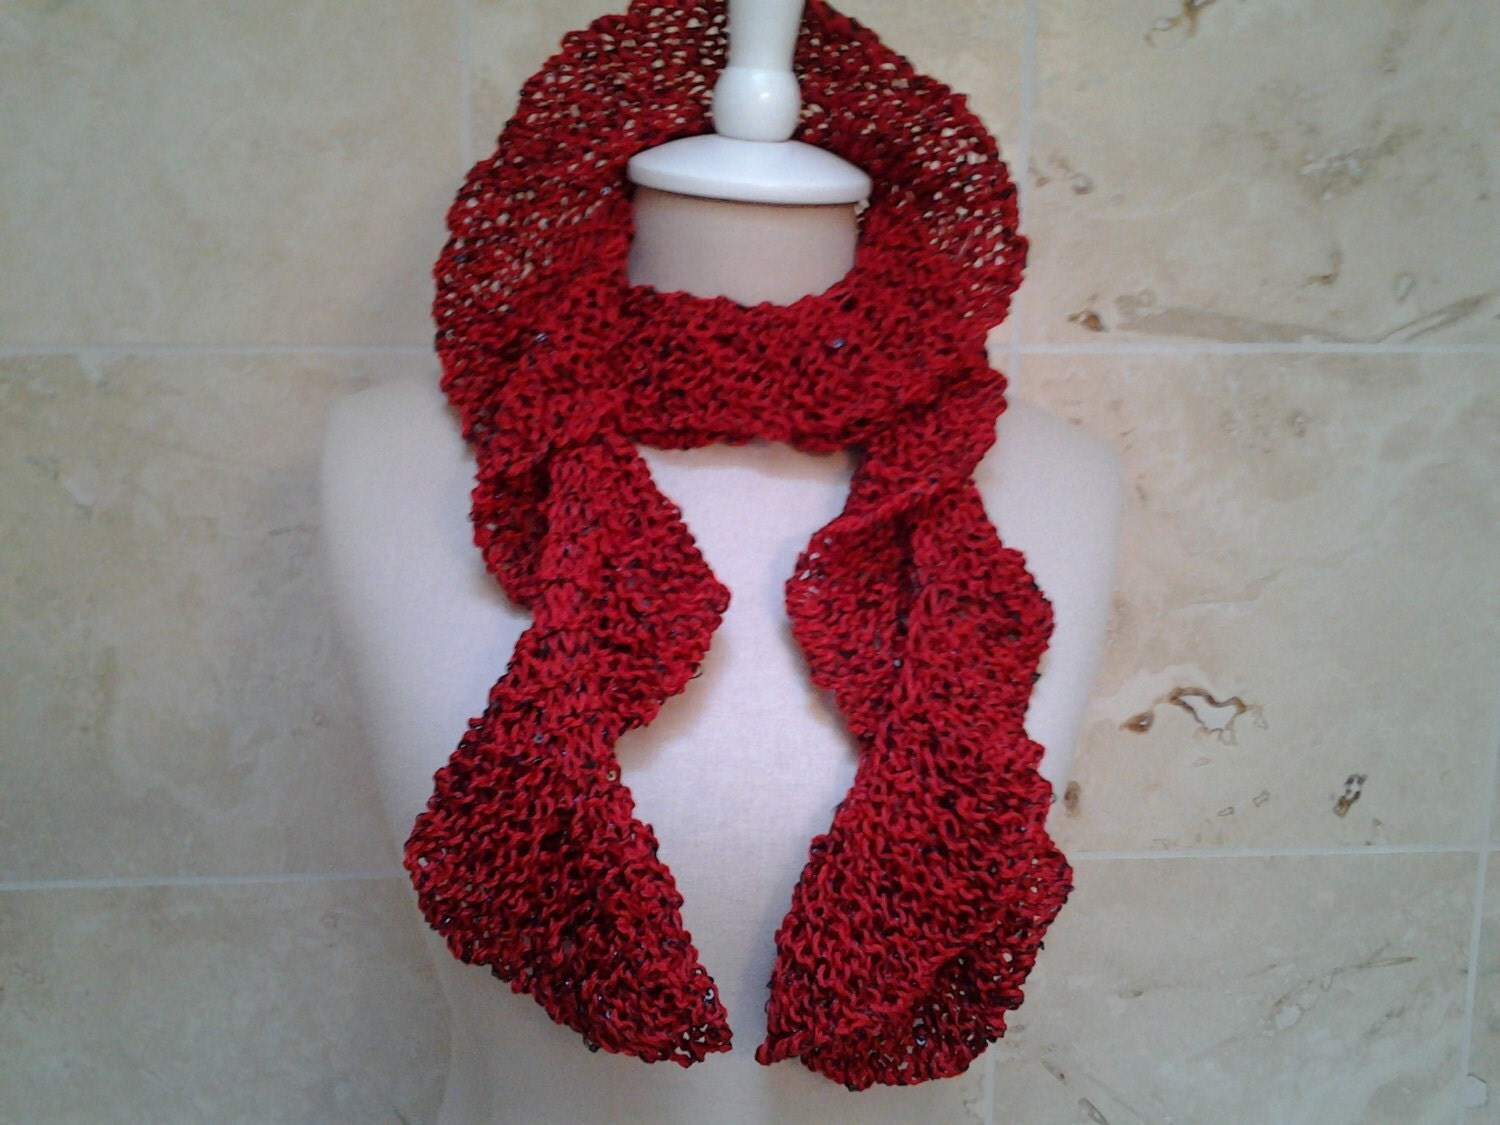 Hand Knit Ruffle Scarf Red Black Sequins by NeckKnitter on Etsy